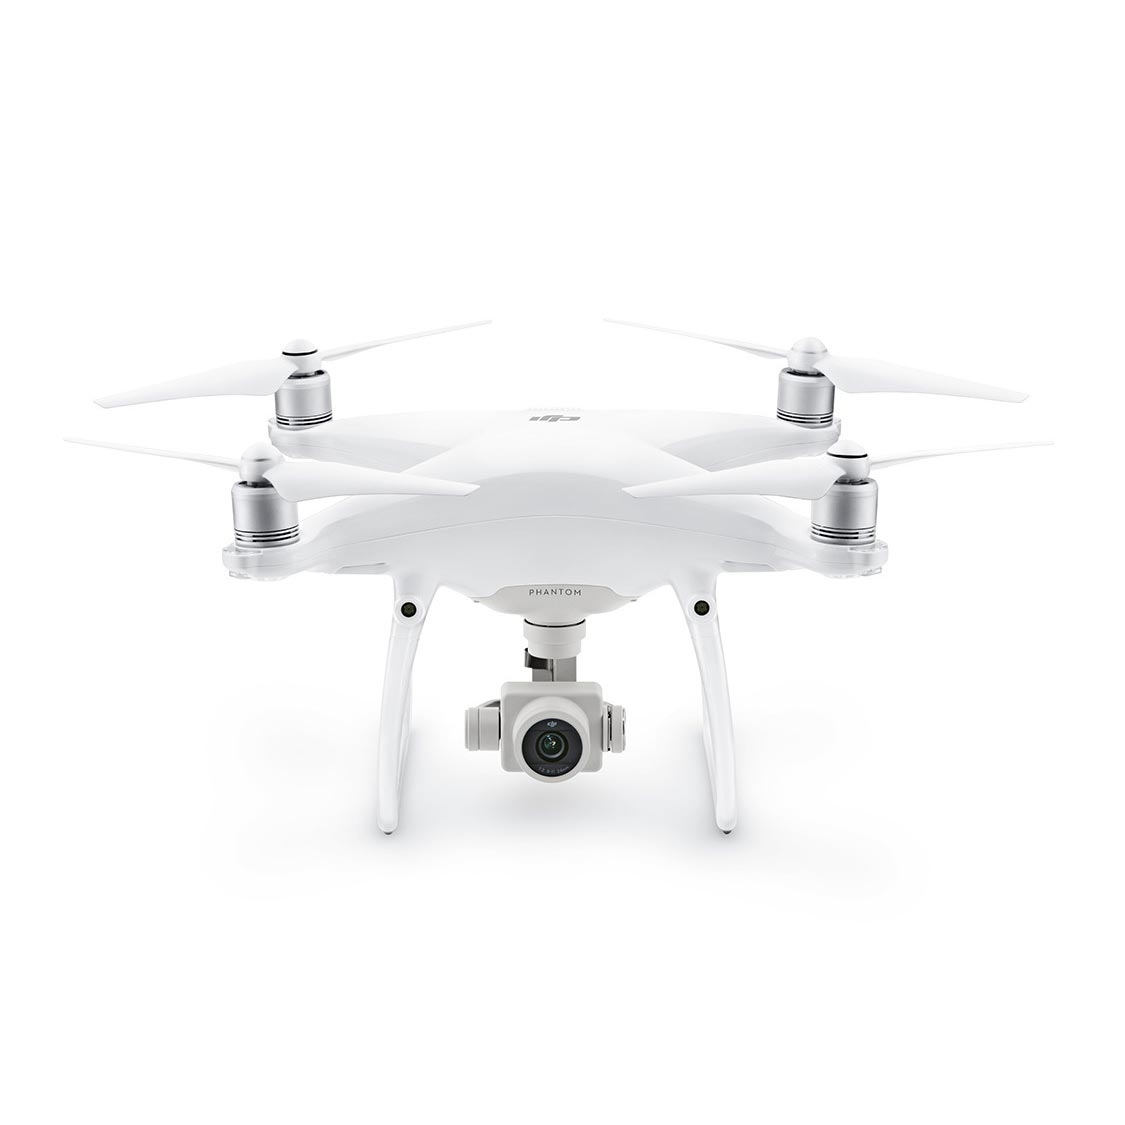 DJI Phantom 4 Pro Drone Camera with 5.5-inch LCD Remote